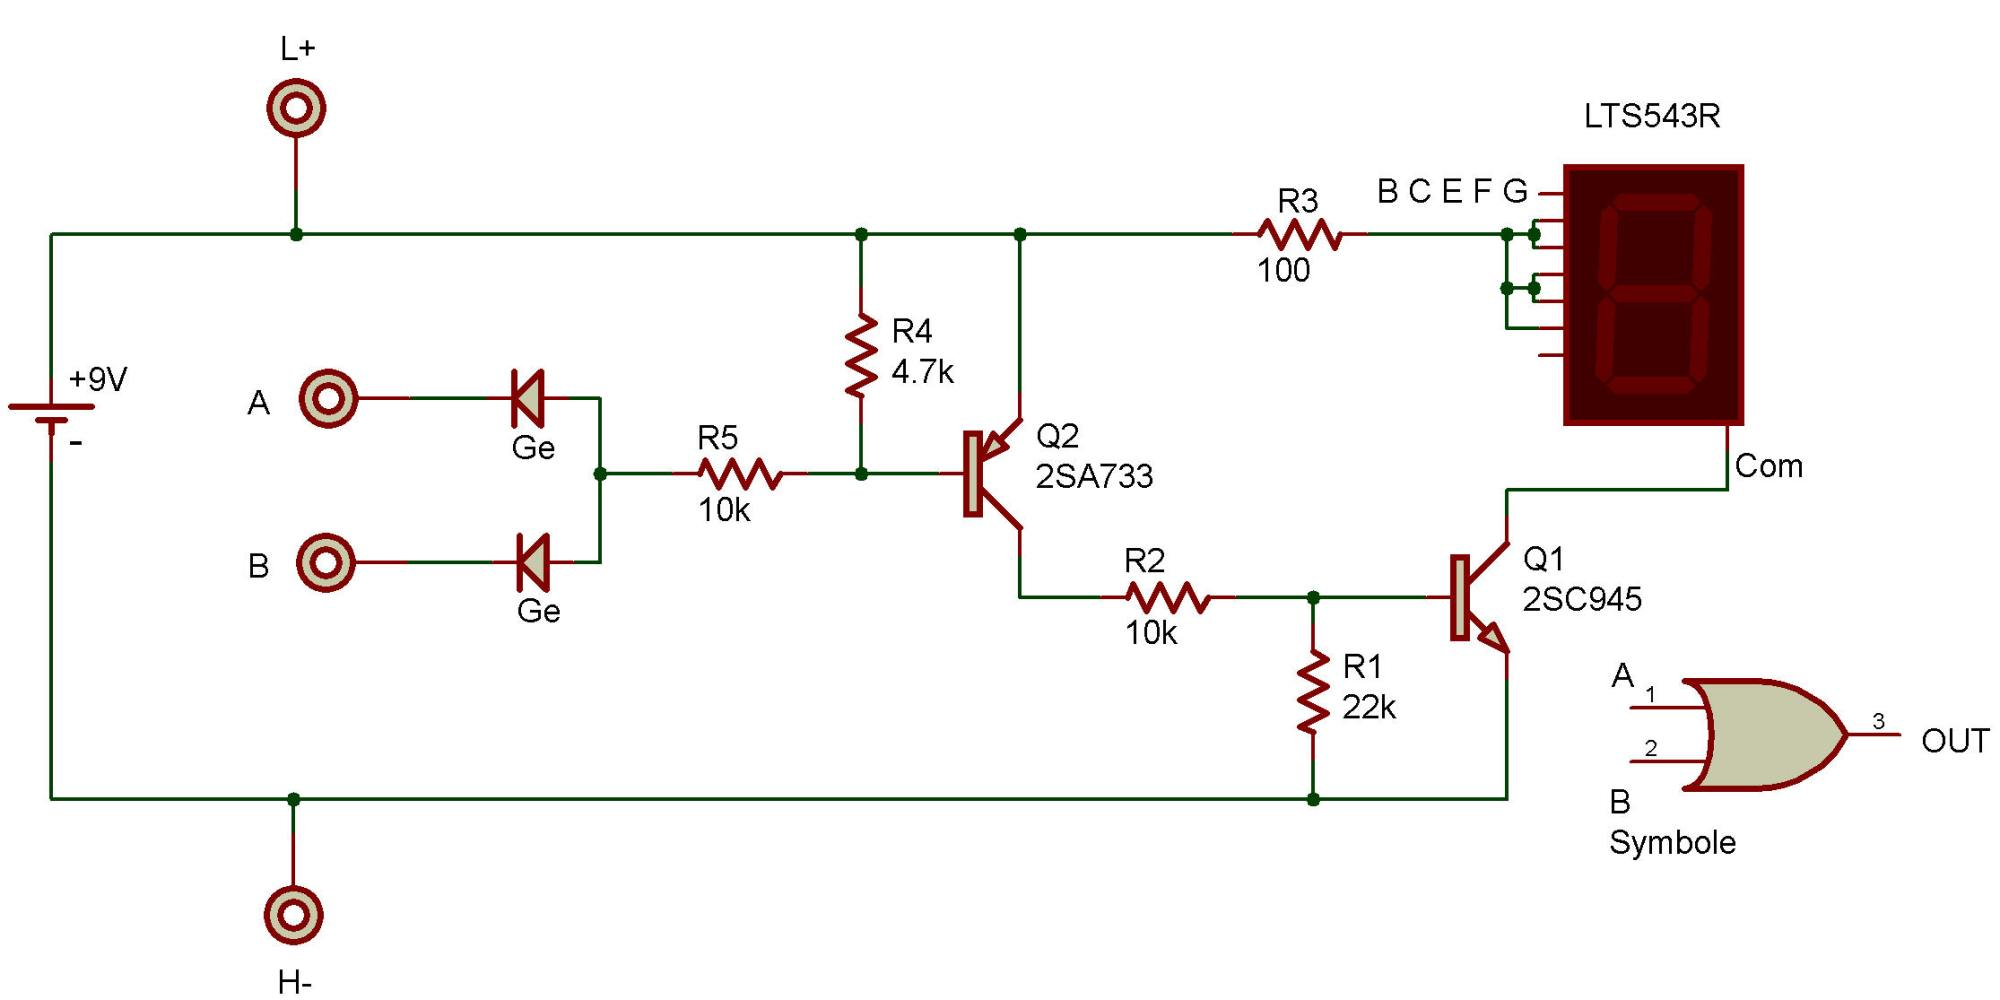 hight resolution of the purpose of this project is to study a logic or circuit as used in computers the readout is connected to display the letter h when either terminal a or